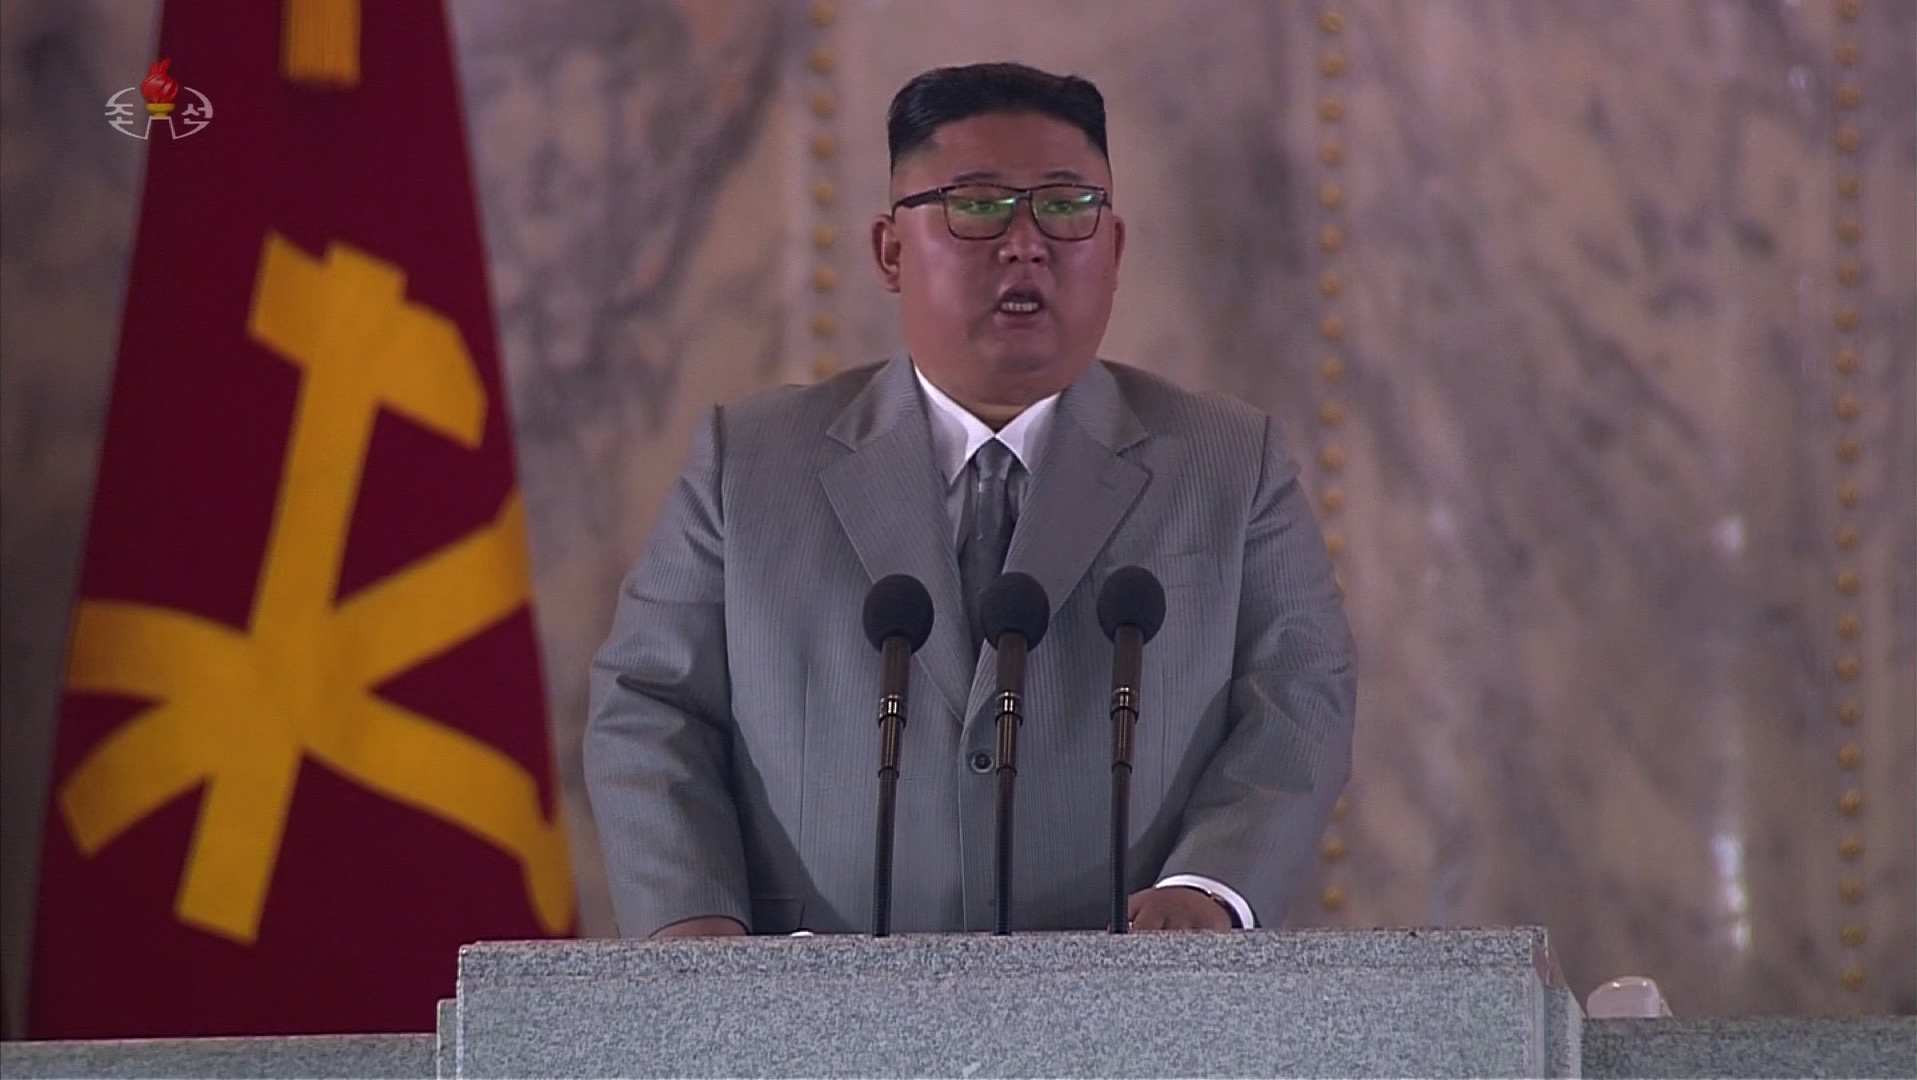 North Korean leader Kim Jong Un speaks during the 75th Worker's Party celebration in Pyongyang. This image comes from Korean Central TV footage, which aired on October 10.